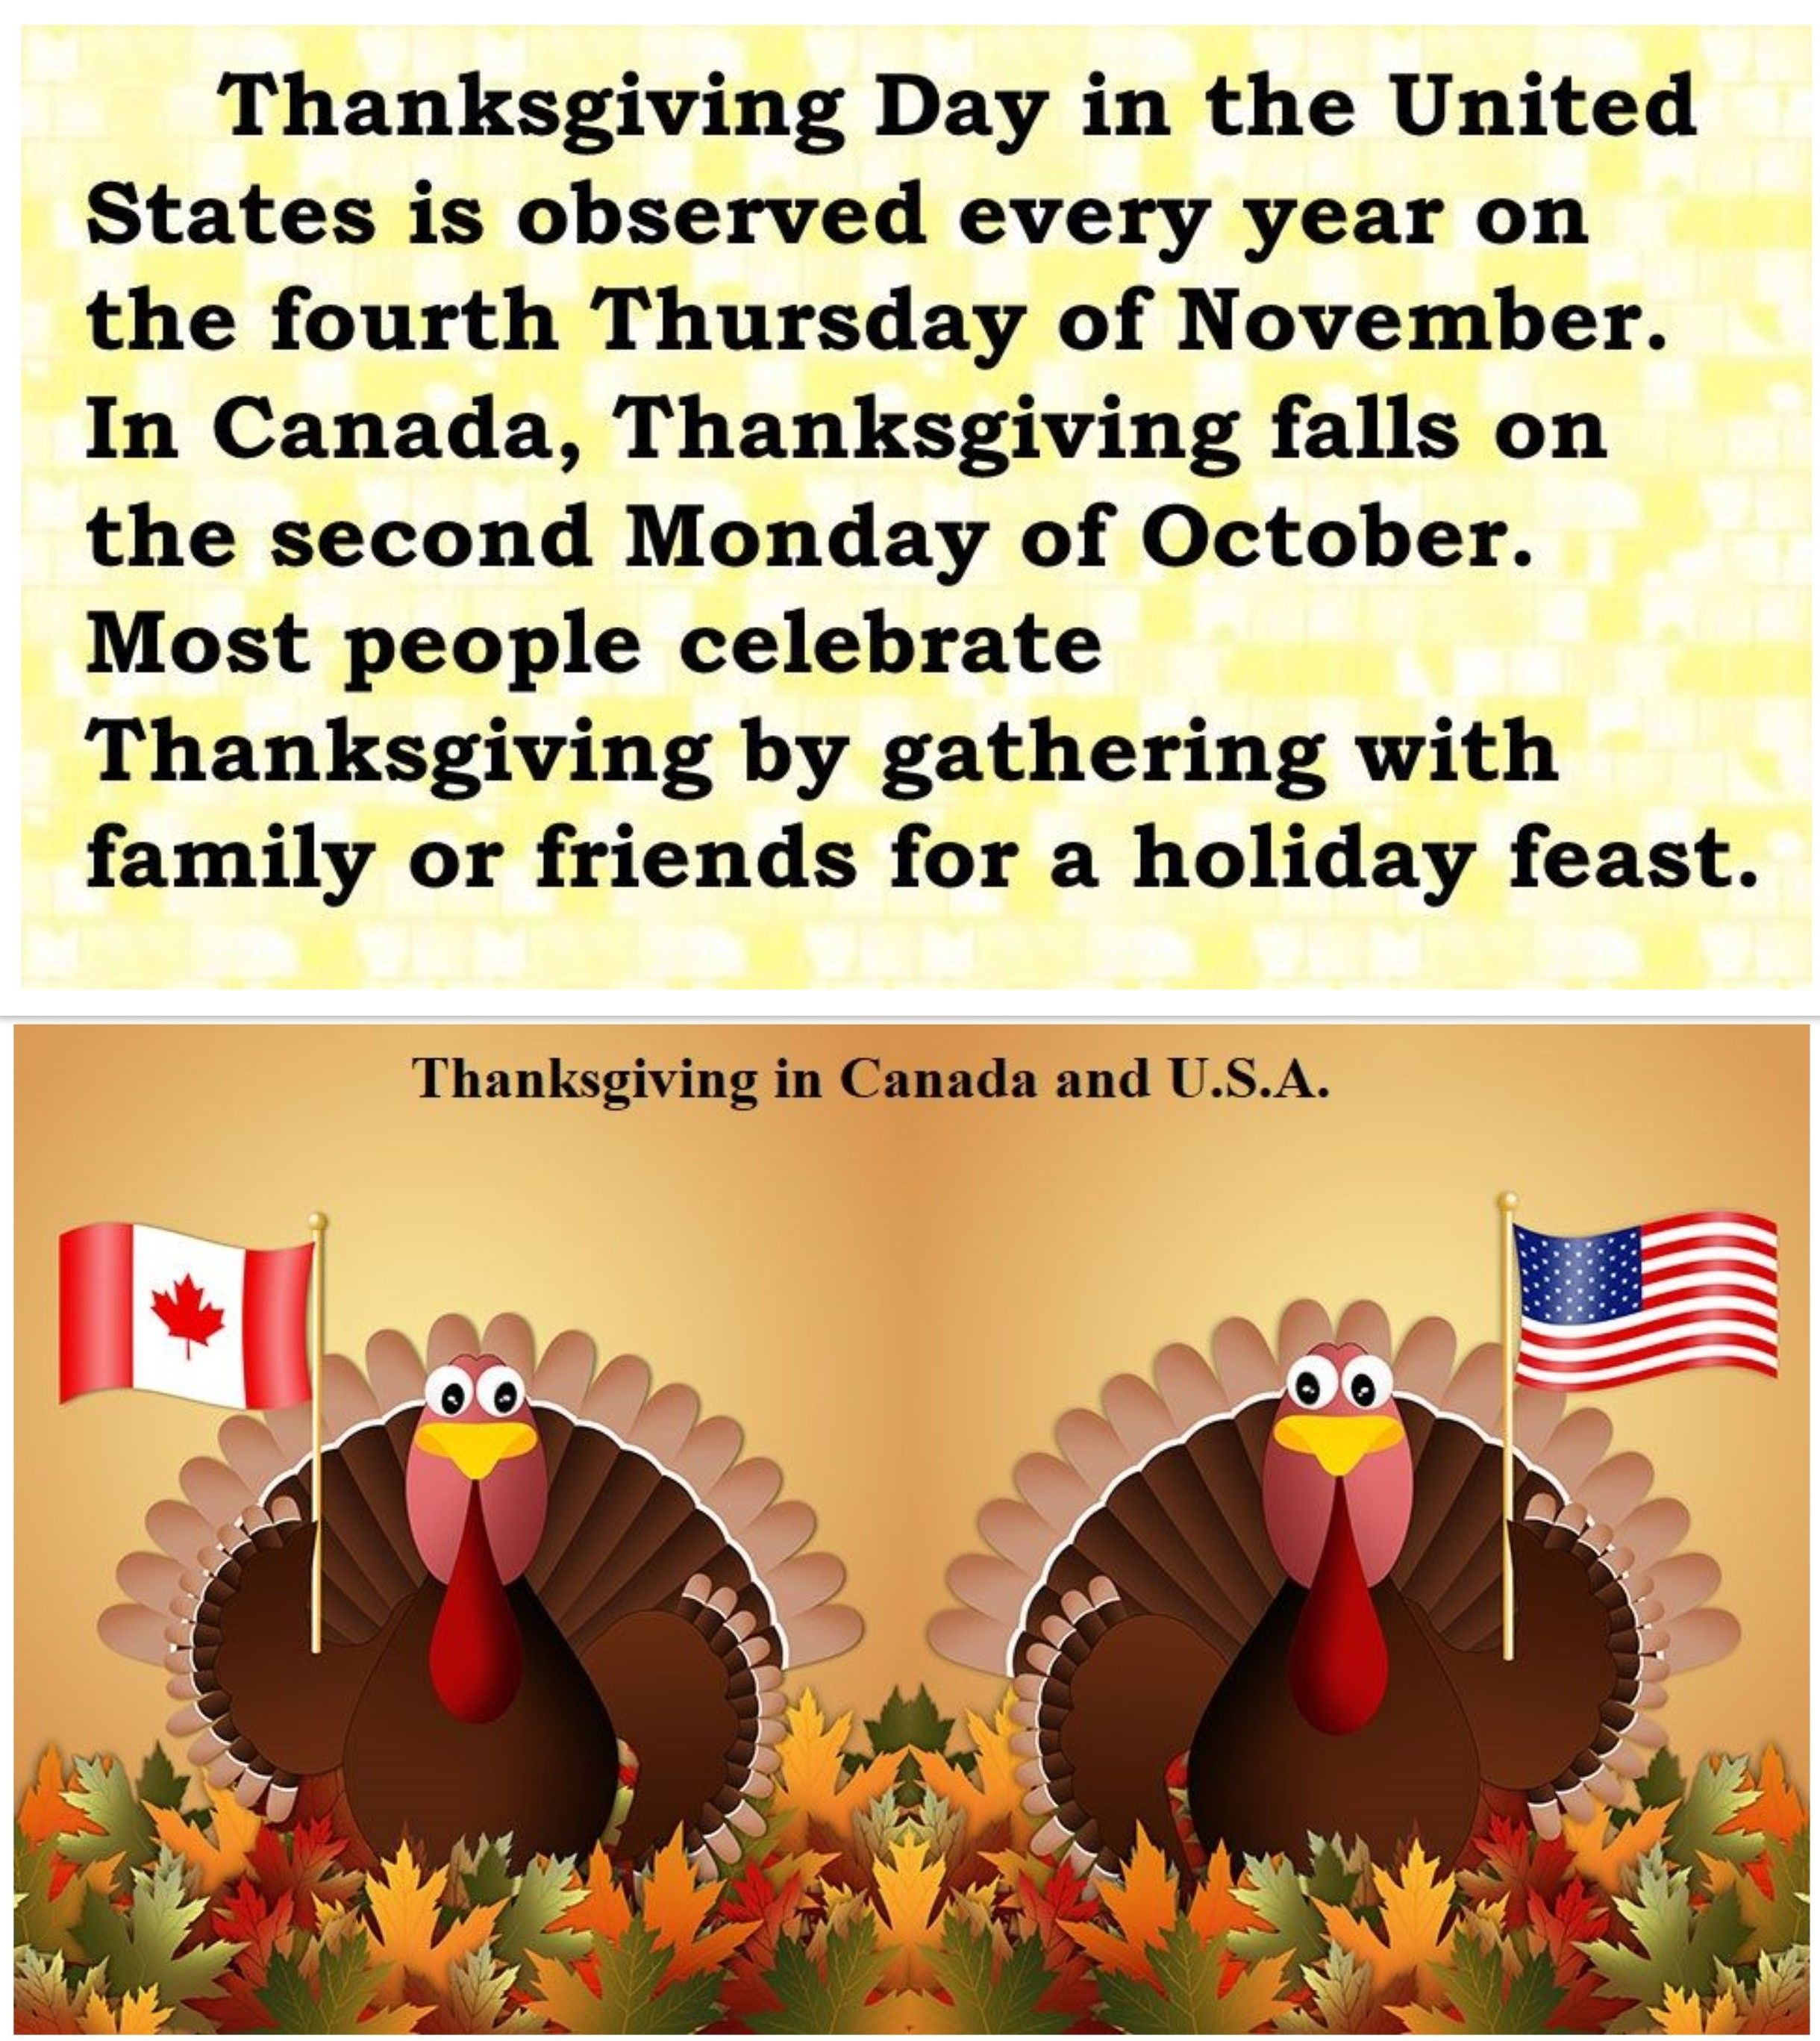 Thanksgiving In The U S A And Canada In 2020 Holiday Feast Thanksgiving Day Thanksgiving In Canada